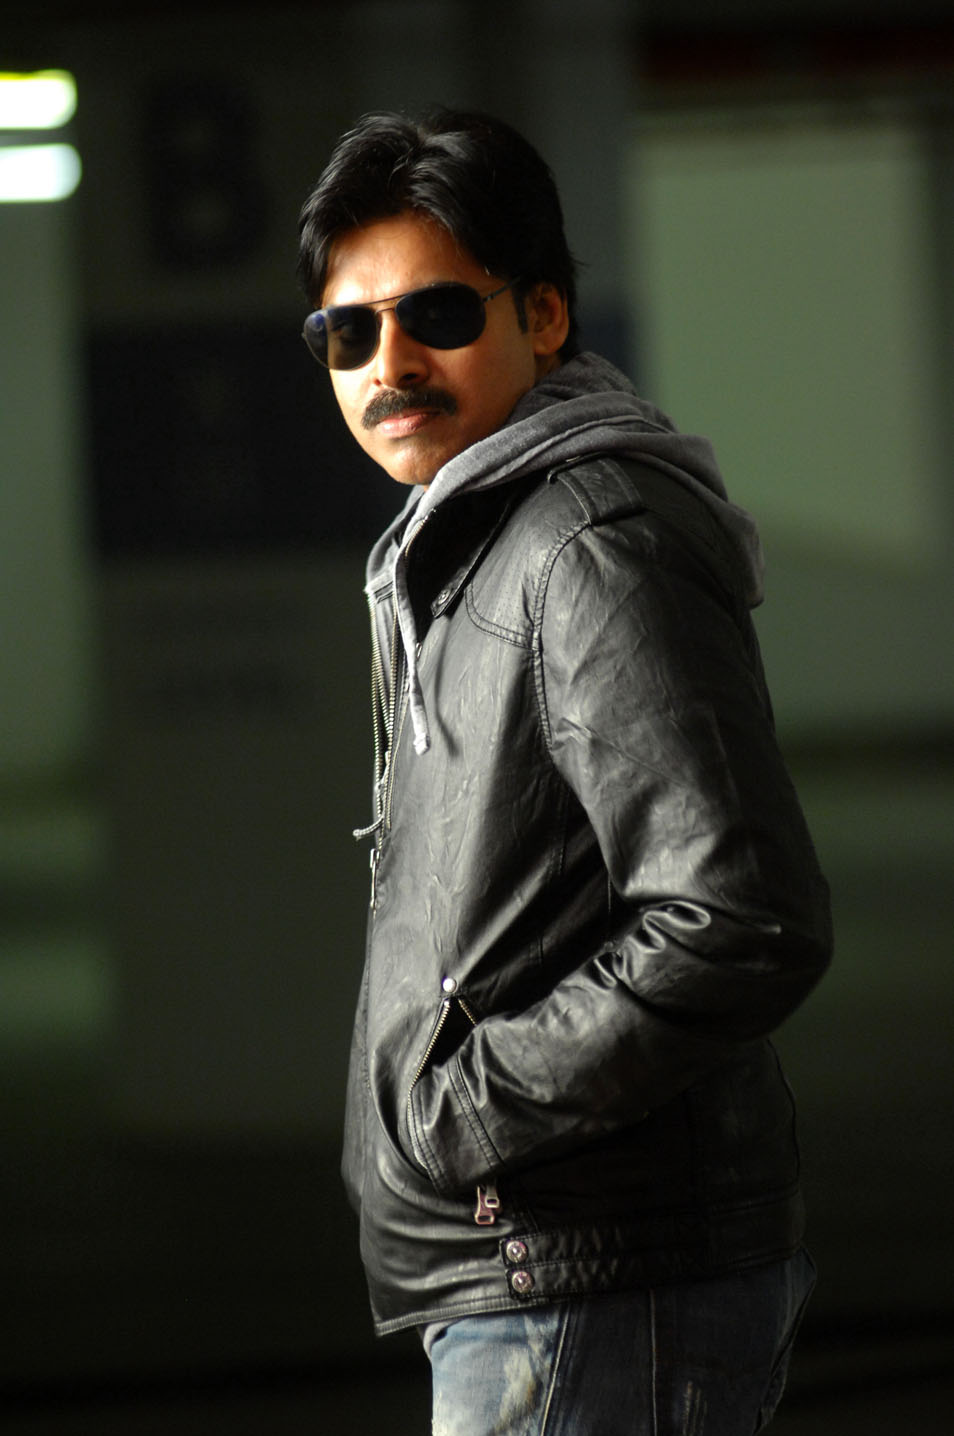 pawan kalyan latest hd images: pawankalyan hd images